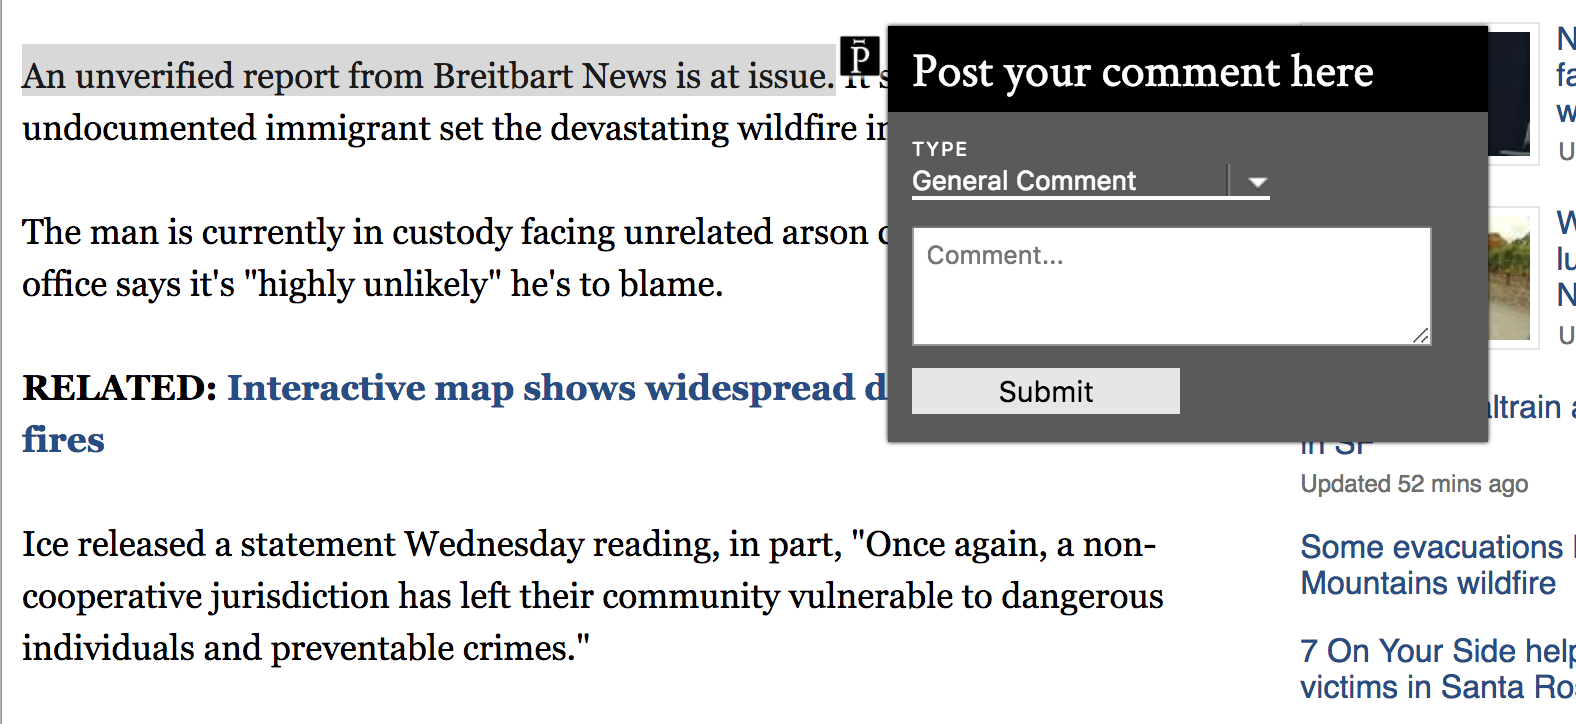 A small comment box over a highlighted sentence in an online news article.